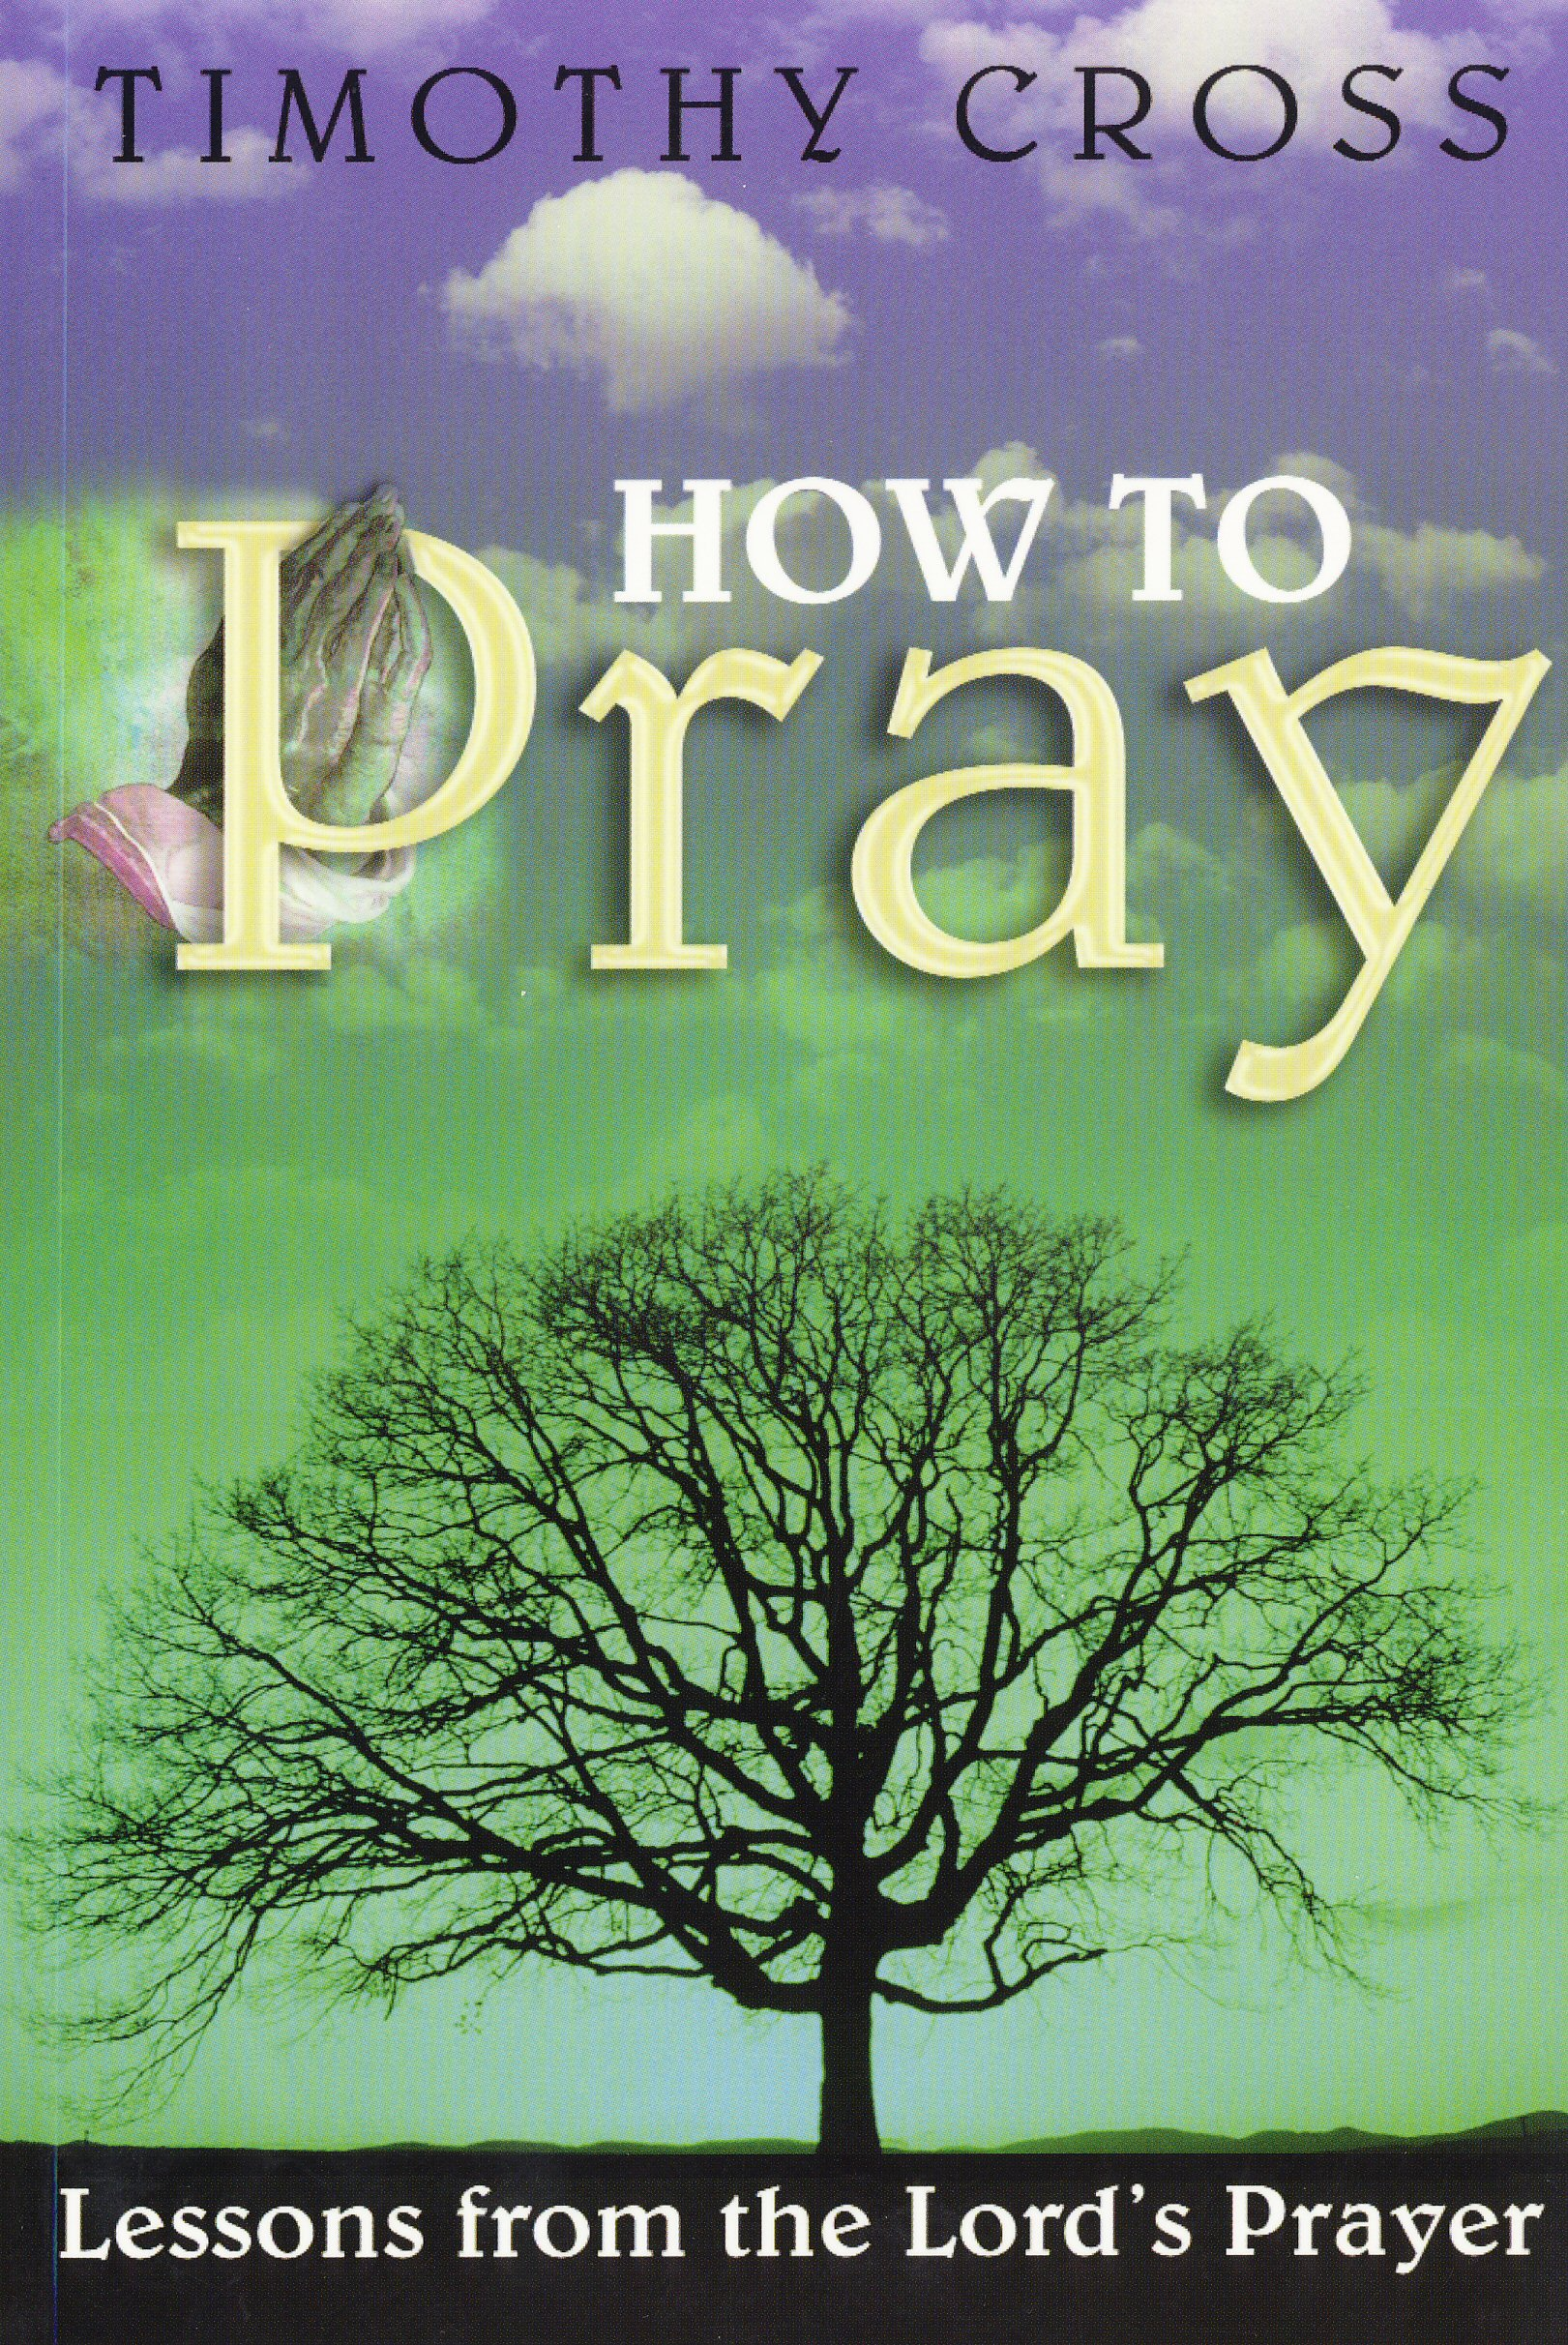 How to Pray: Lessons from the Lord's Prayer